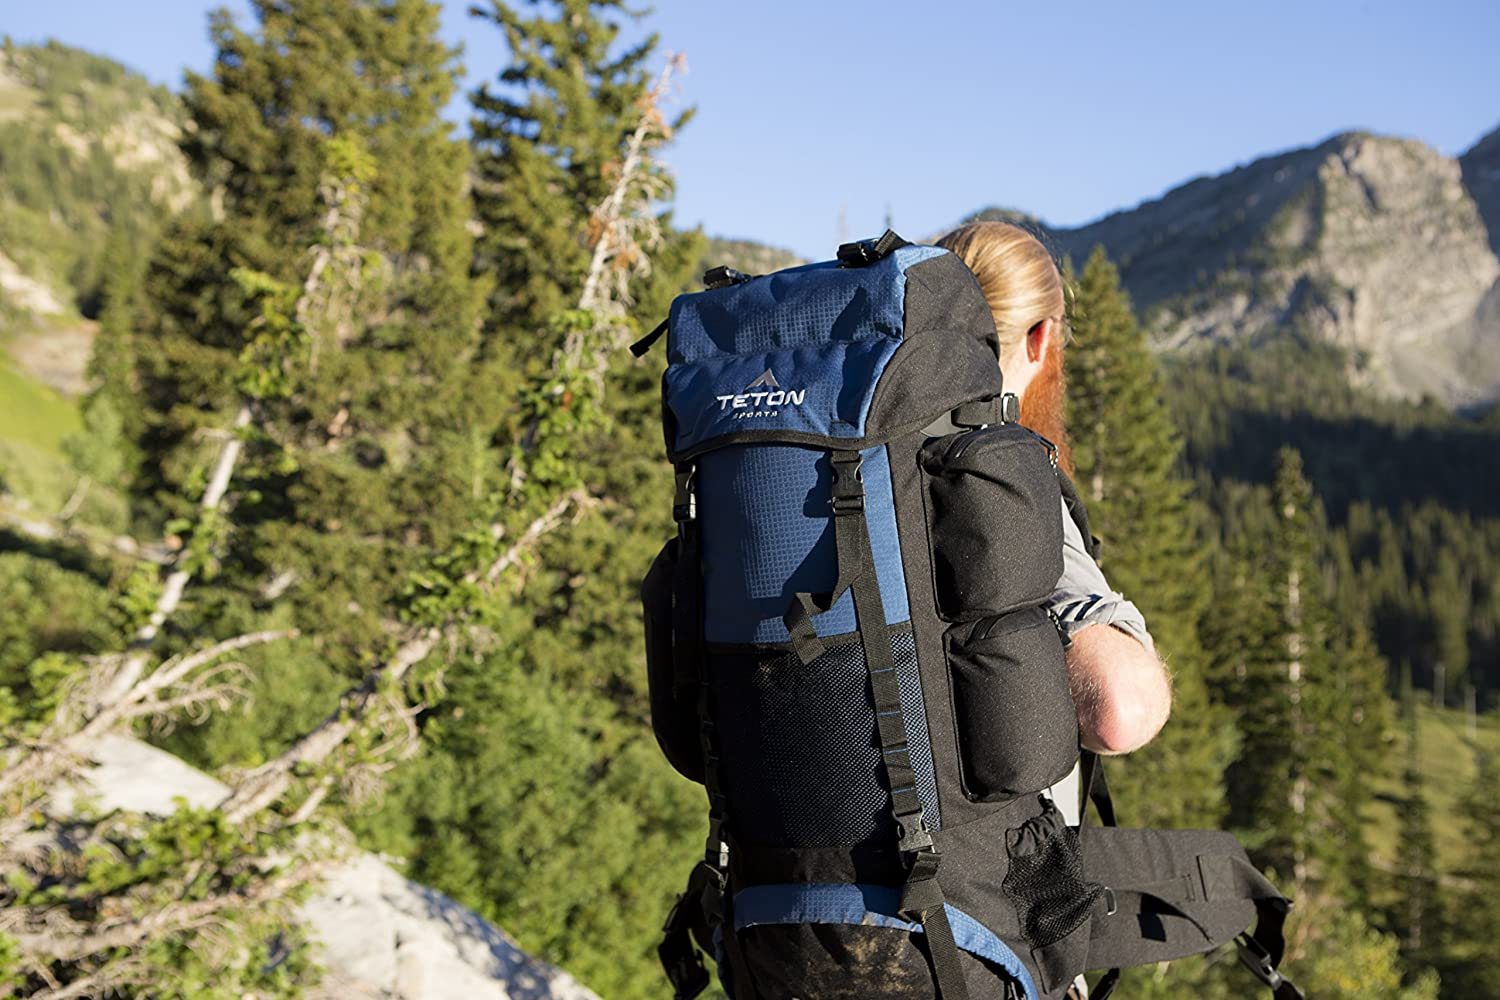 TETON SPORTS Explorer 4000 Internal Frame Backpack – Not Your Basic Backpack